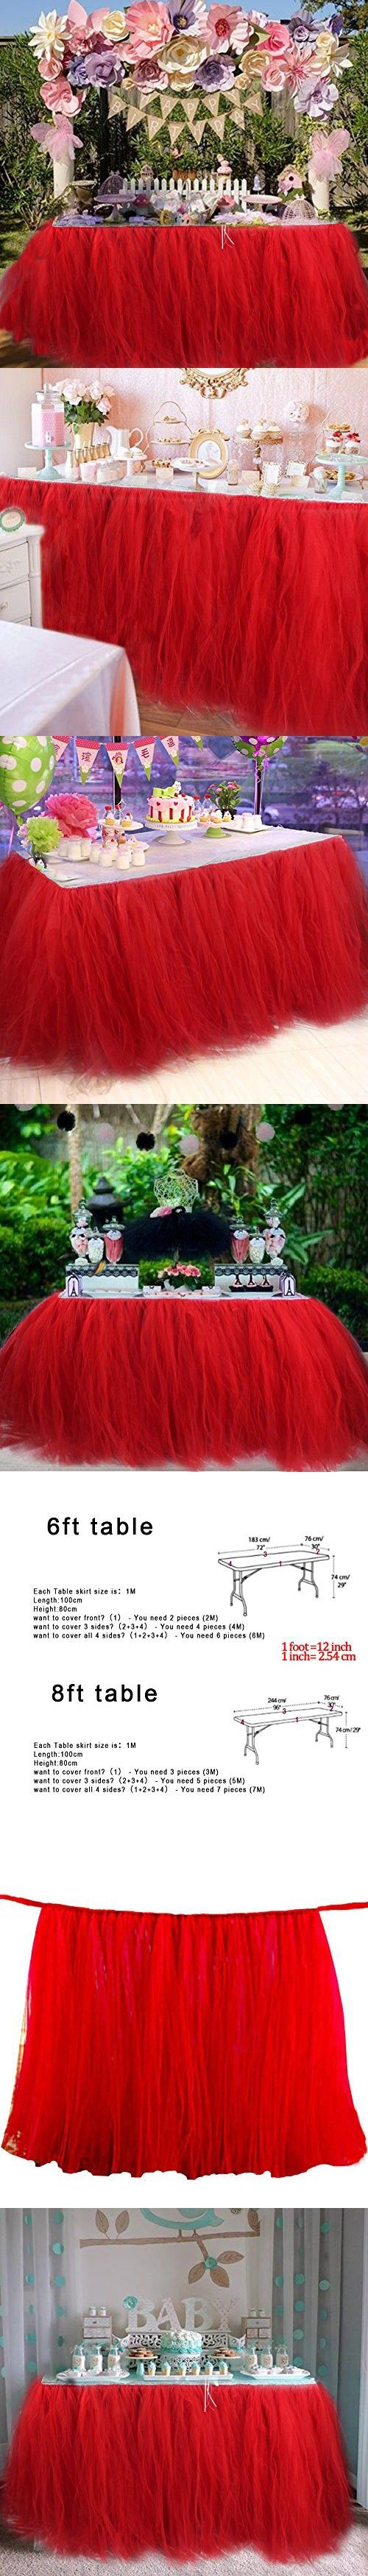 25 Best Ideas About Tutu Table On Pinterest Cute Baby